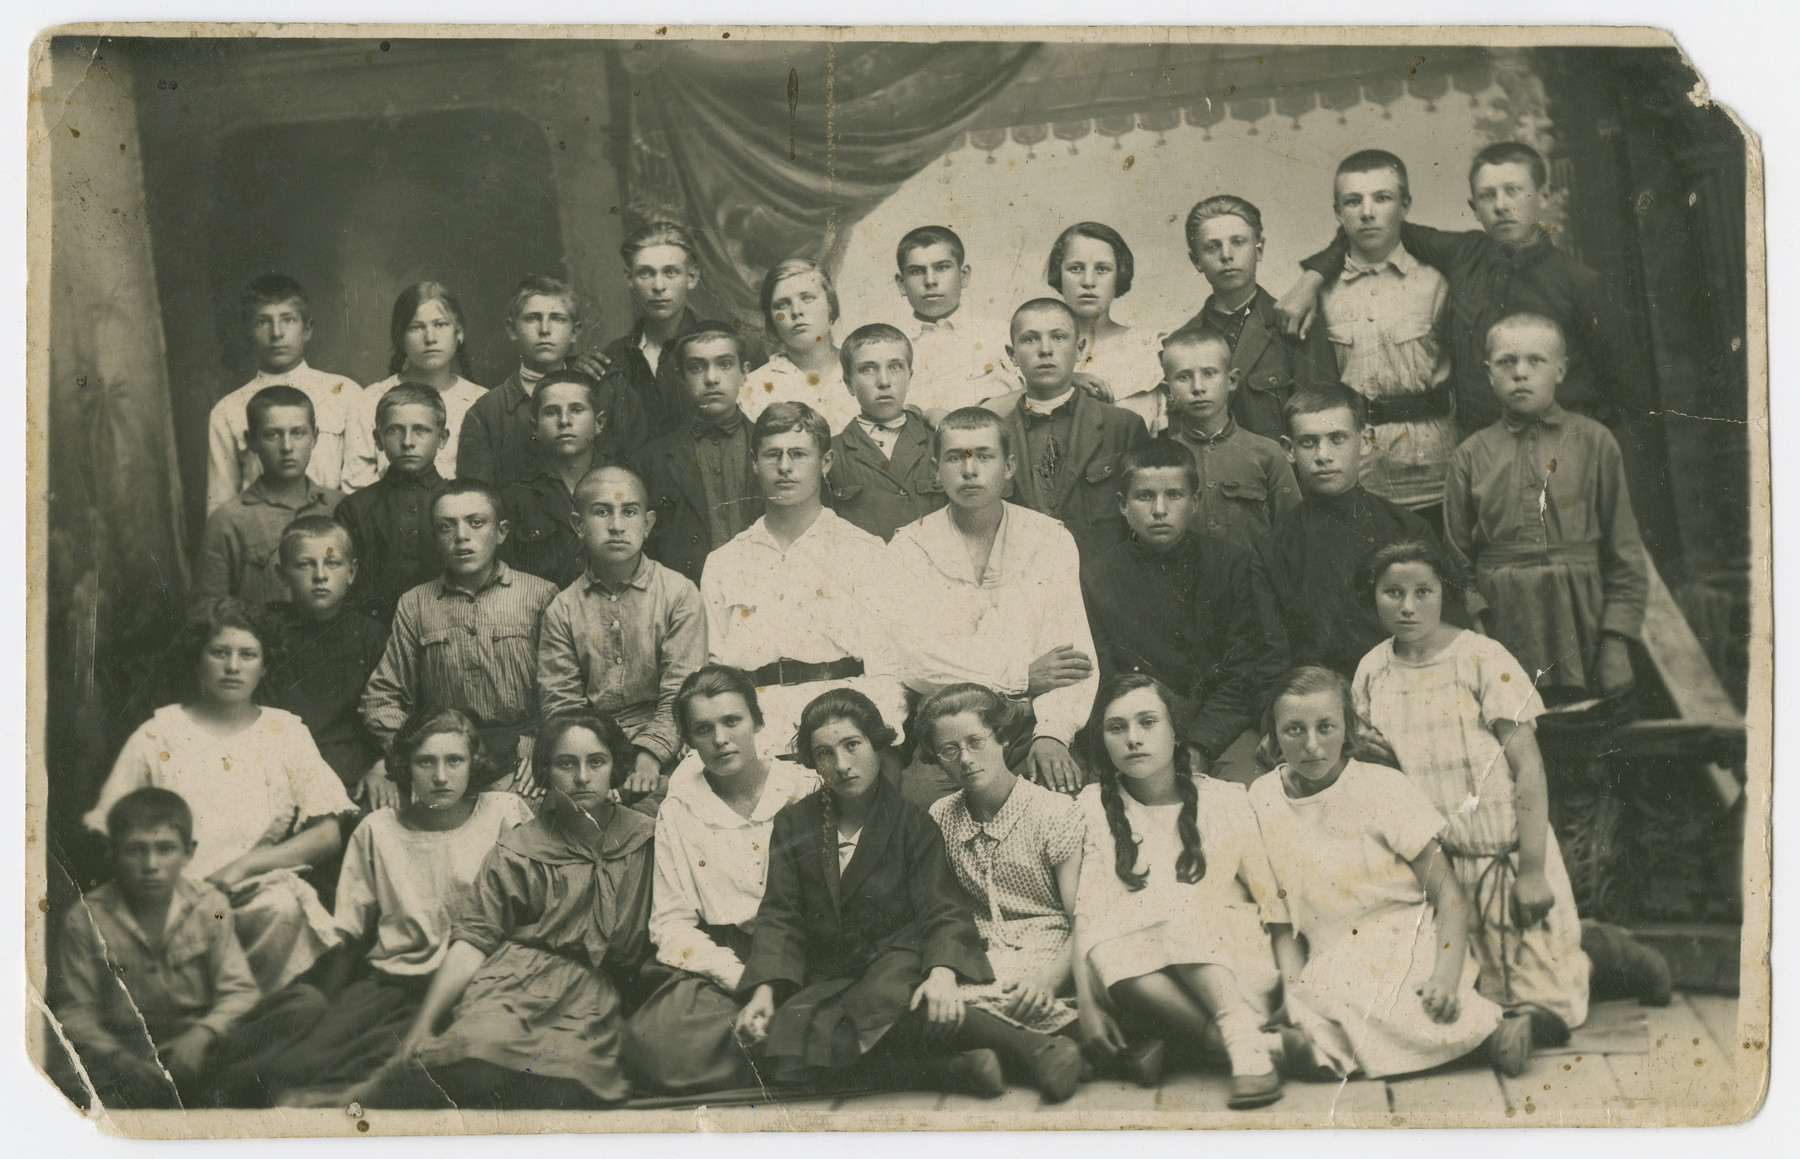 Group portrait of Jewish youth in Orinin, Ukraine.  Among those pictured is Mania Lechtman, who was one of the few survivors.